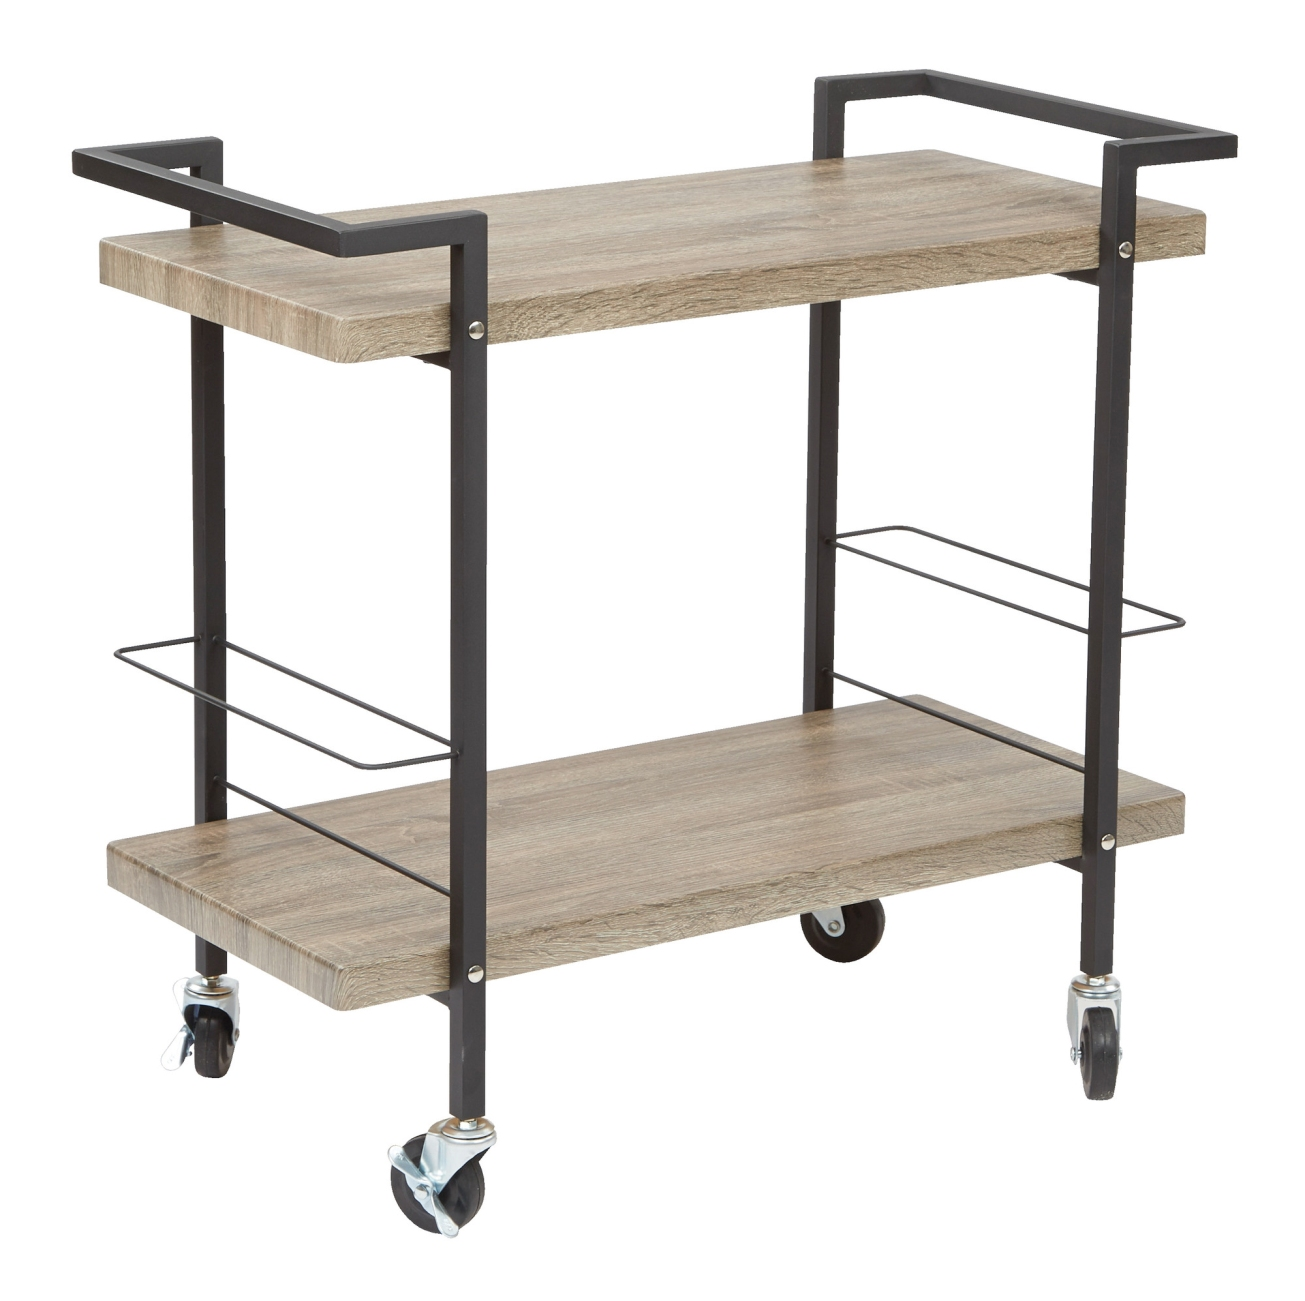 OSP Designs Maxwell Serving Cart, Wayfair